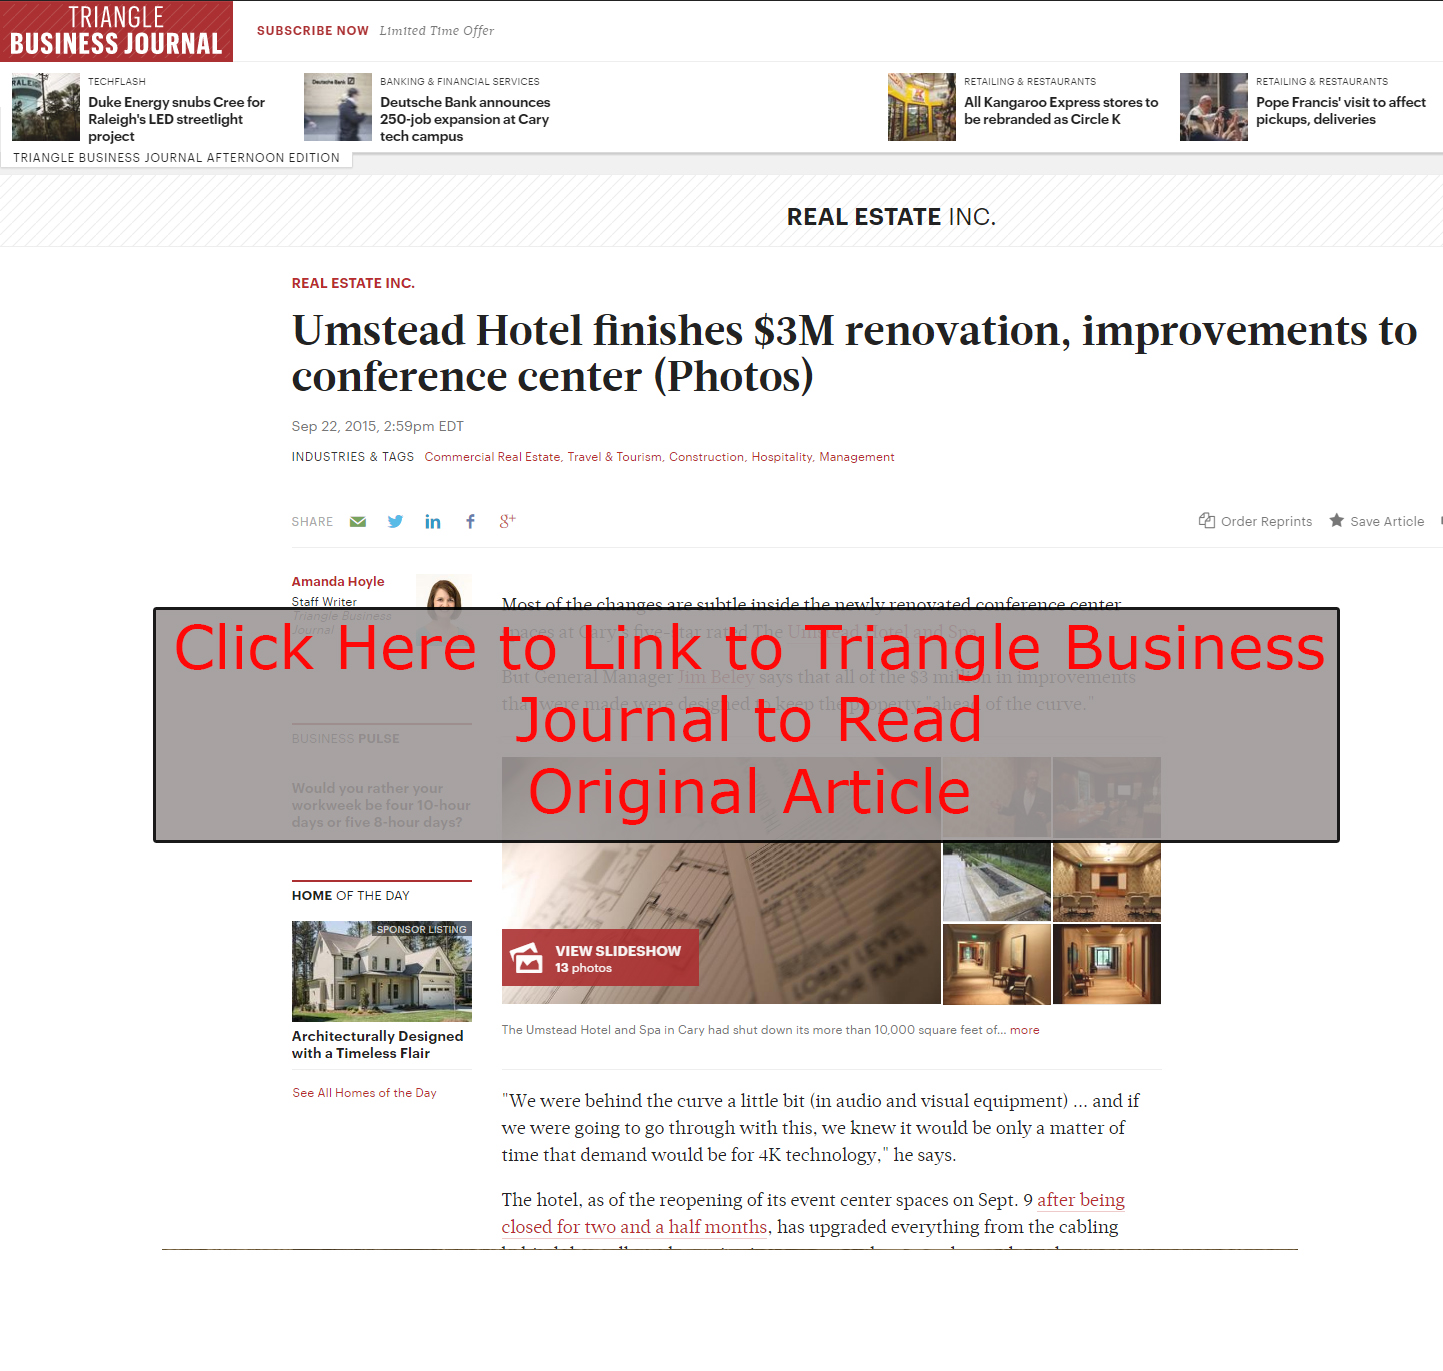 Umstead Hotel Renovations Interior Design by MBID in TBJ